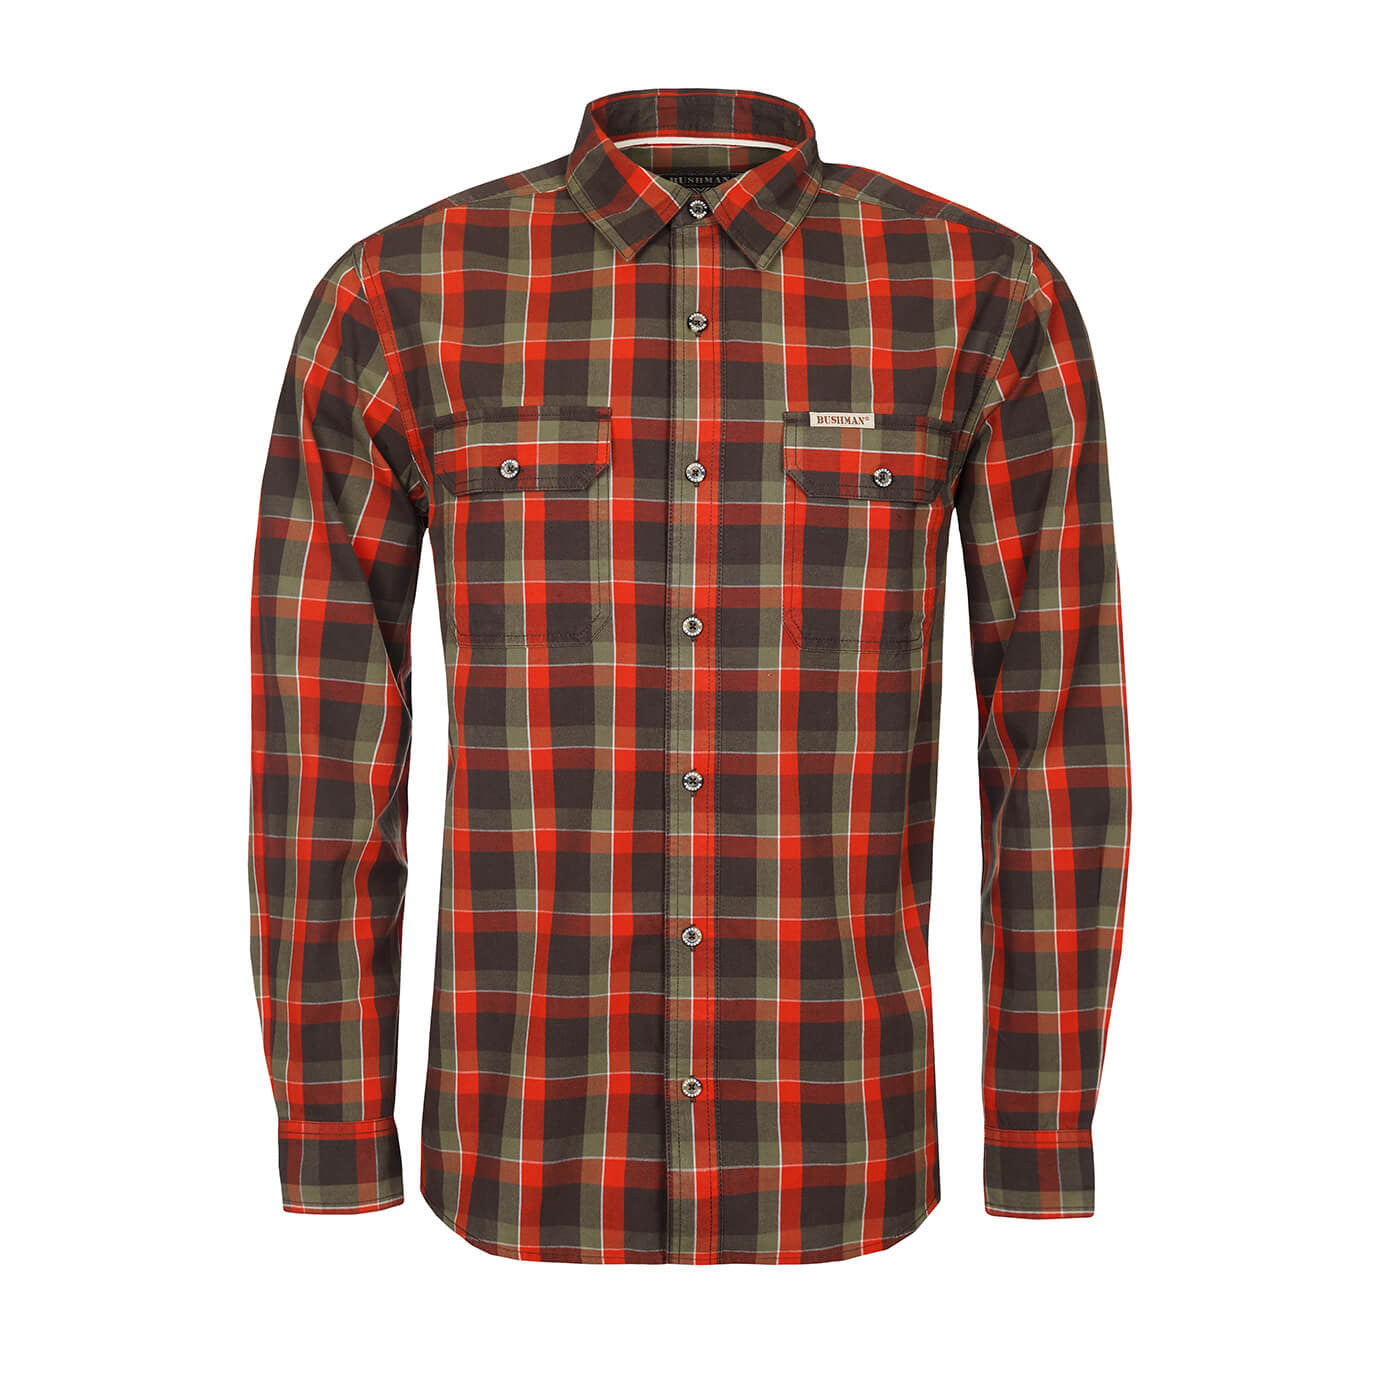 BUSHMANSHOP ENDERBY MEN'S PLAID RED COTTON FLANNEL LONG SLEEVE SHIRT